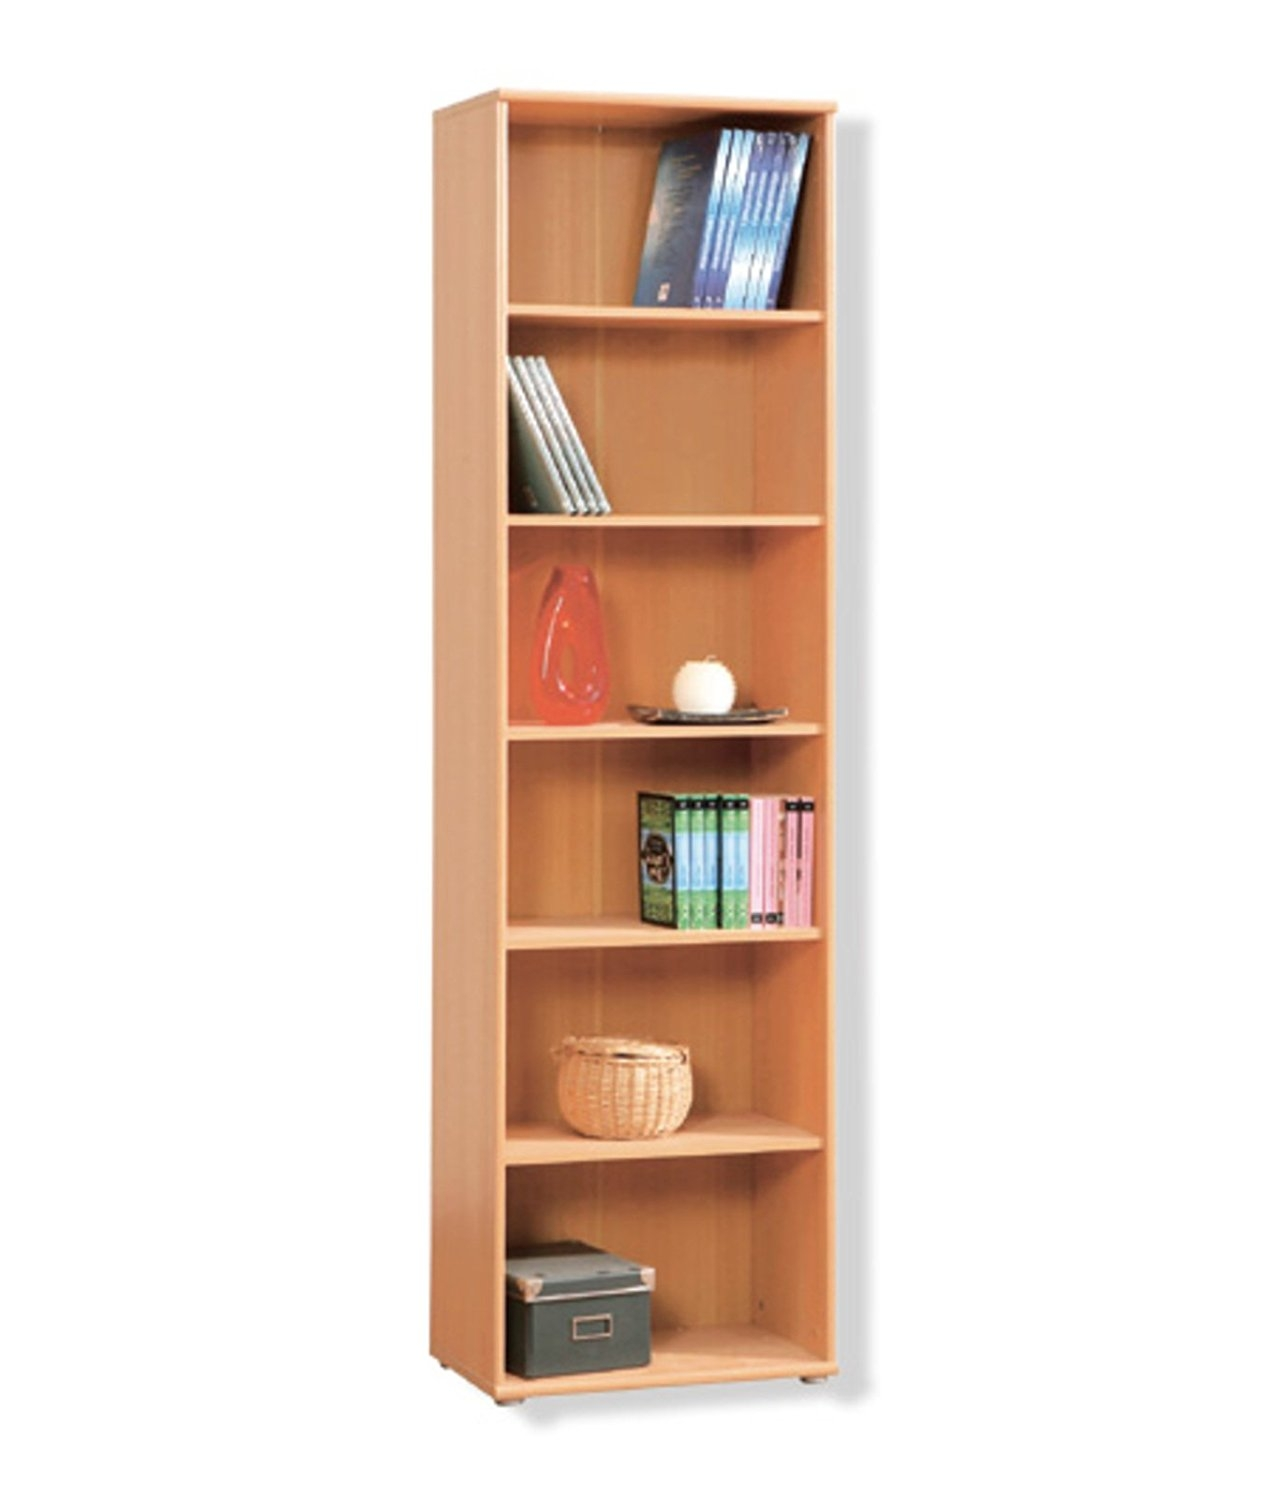 Tempra Tall Narrow Beech Bookcase Bookshelf Home Office Furniture Intended For Beech Bookcases (View 13 of 15)